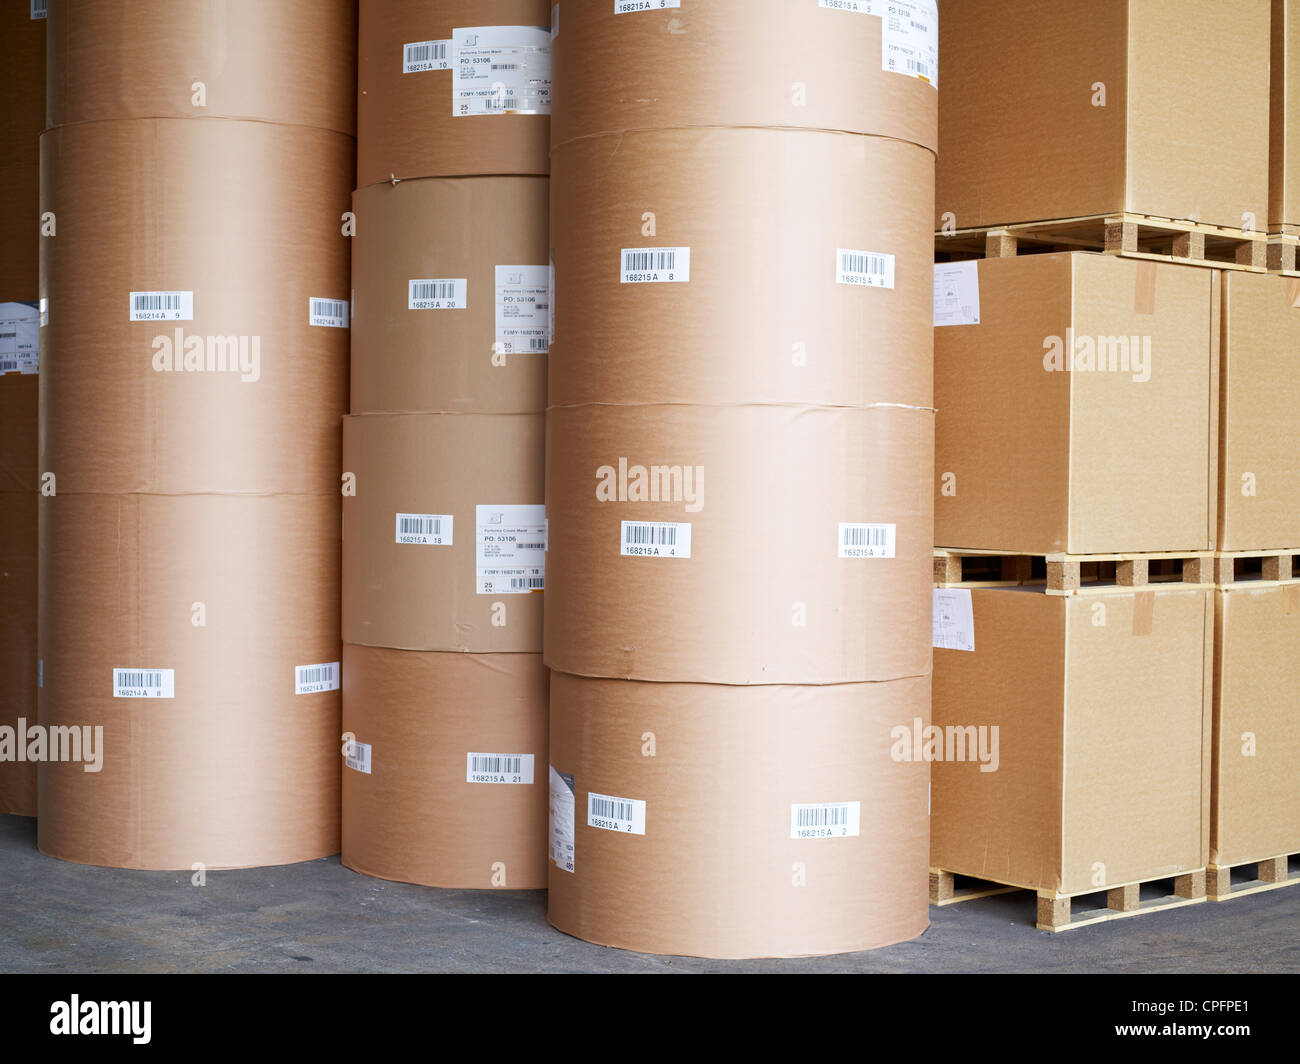 Stacked palettes at cardboard at a printing press in Malaysia. April 28, 2011. - Stock Image